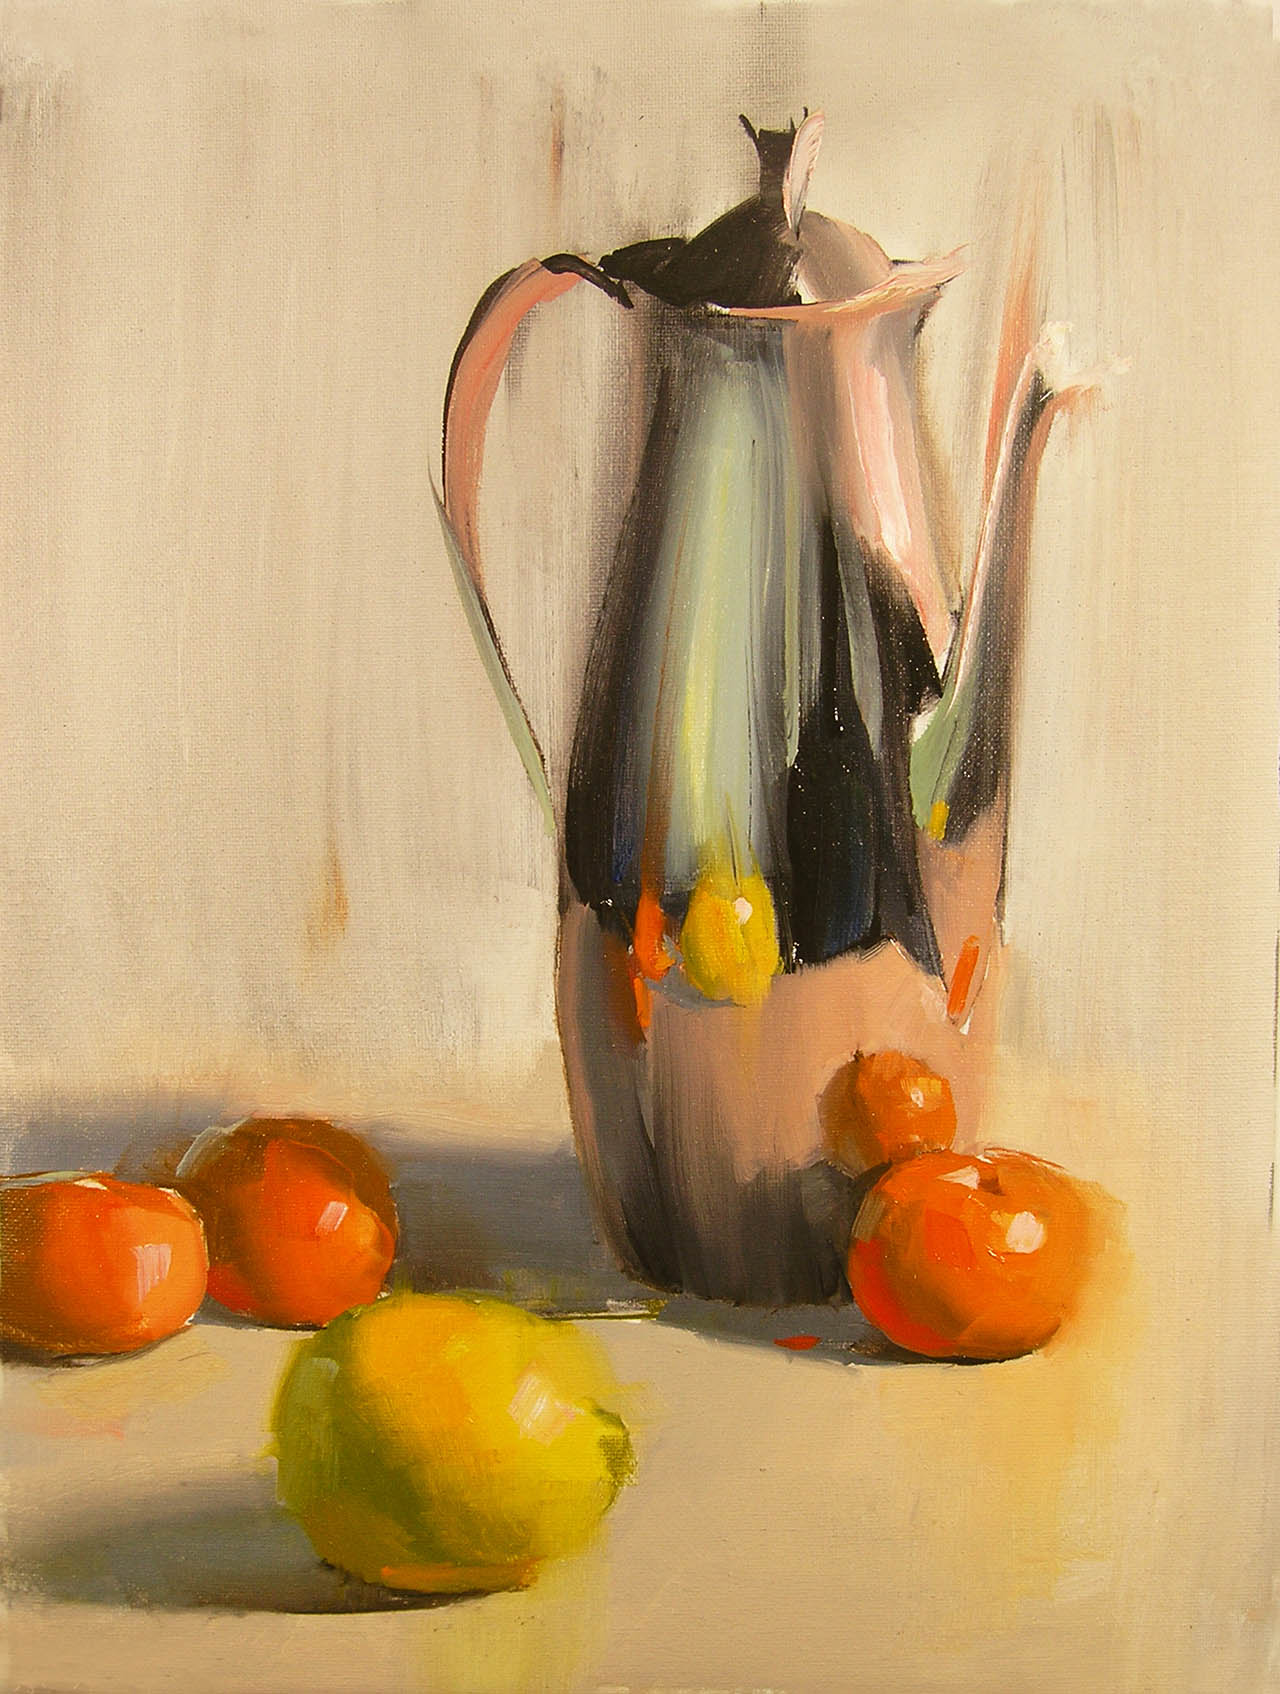 Silver and Tangerines, by Carol Tarzier